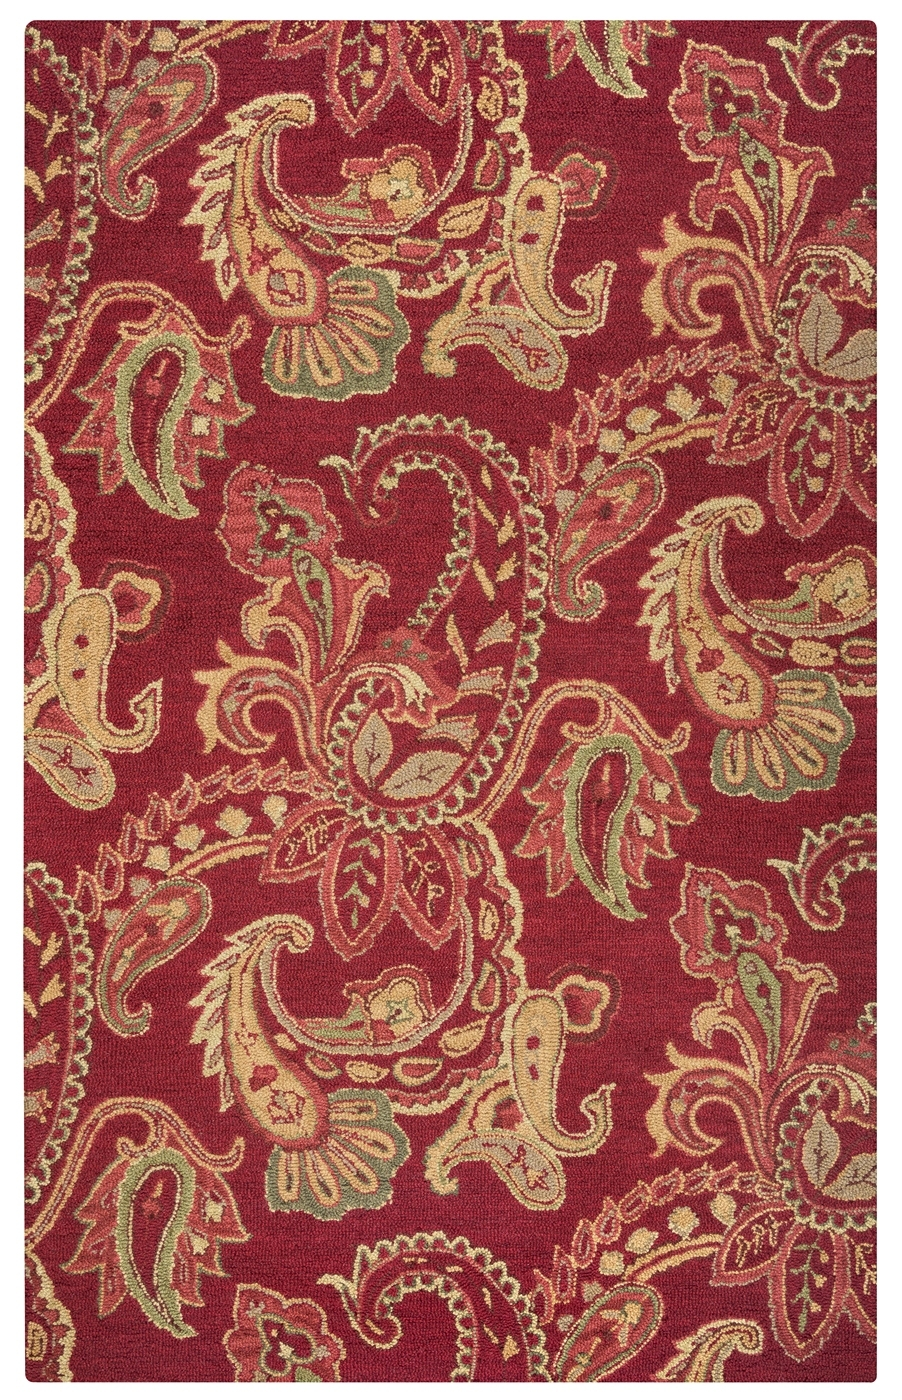 Ashlyn Paisley Pattern New Zealand Wool Area Rug In Burgandy Amp With Regard To New Zealand Wool Area Rugs (#3 of 15)